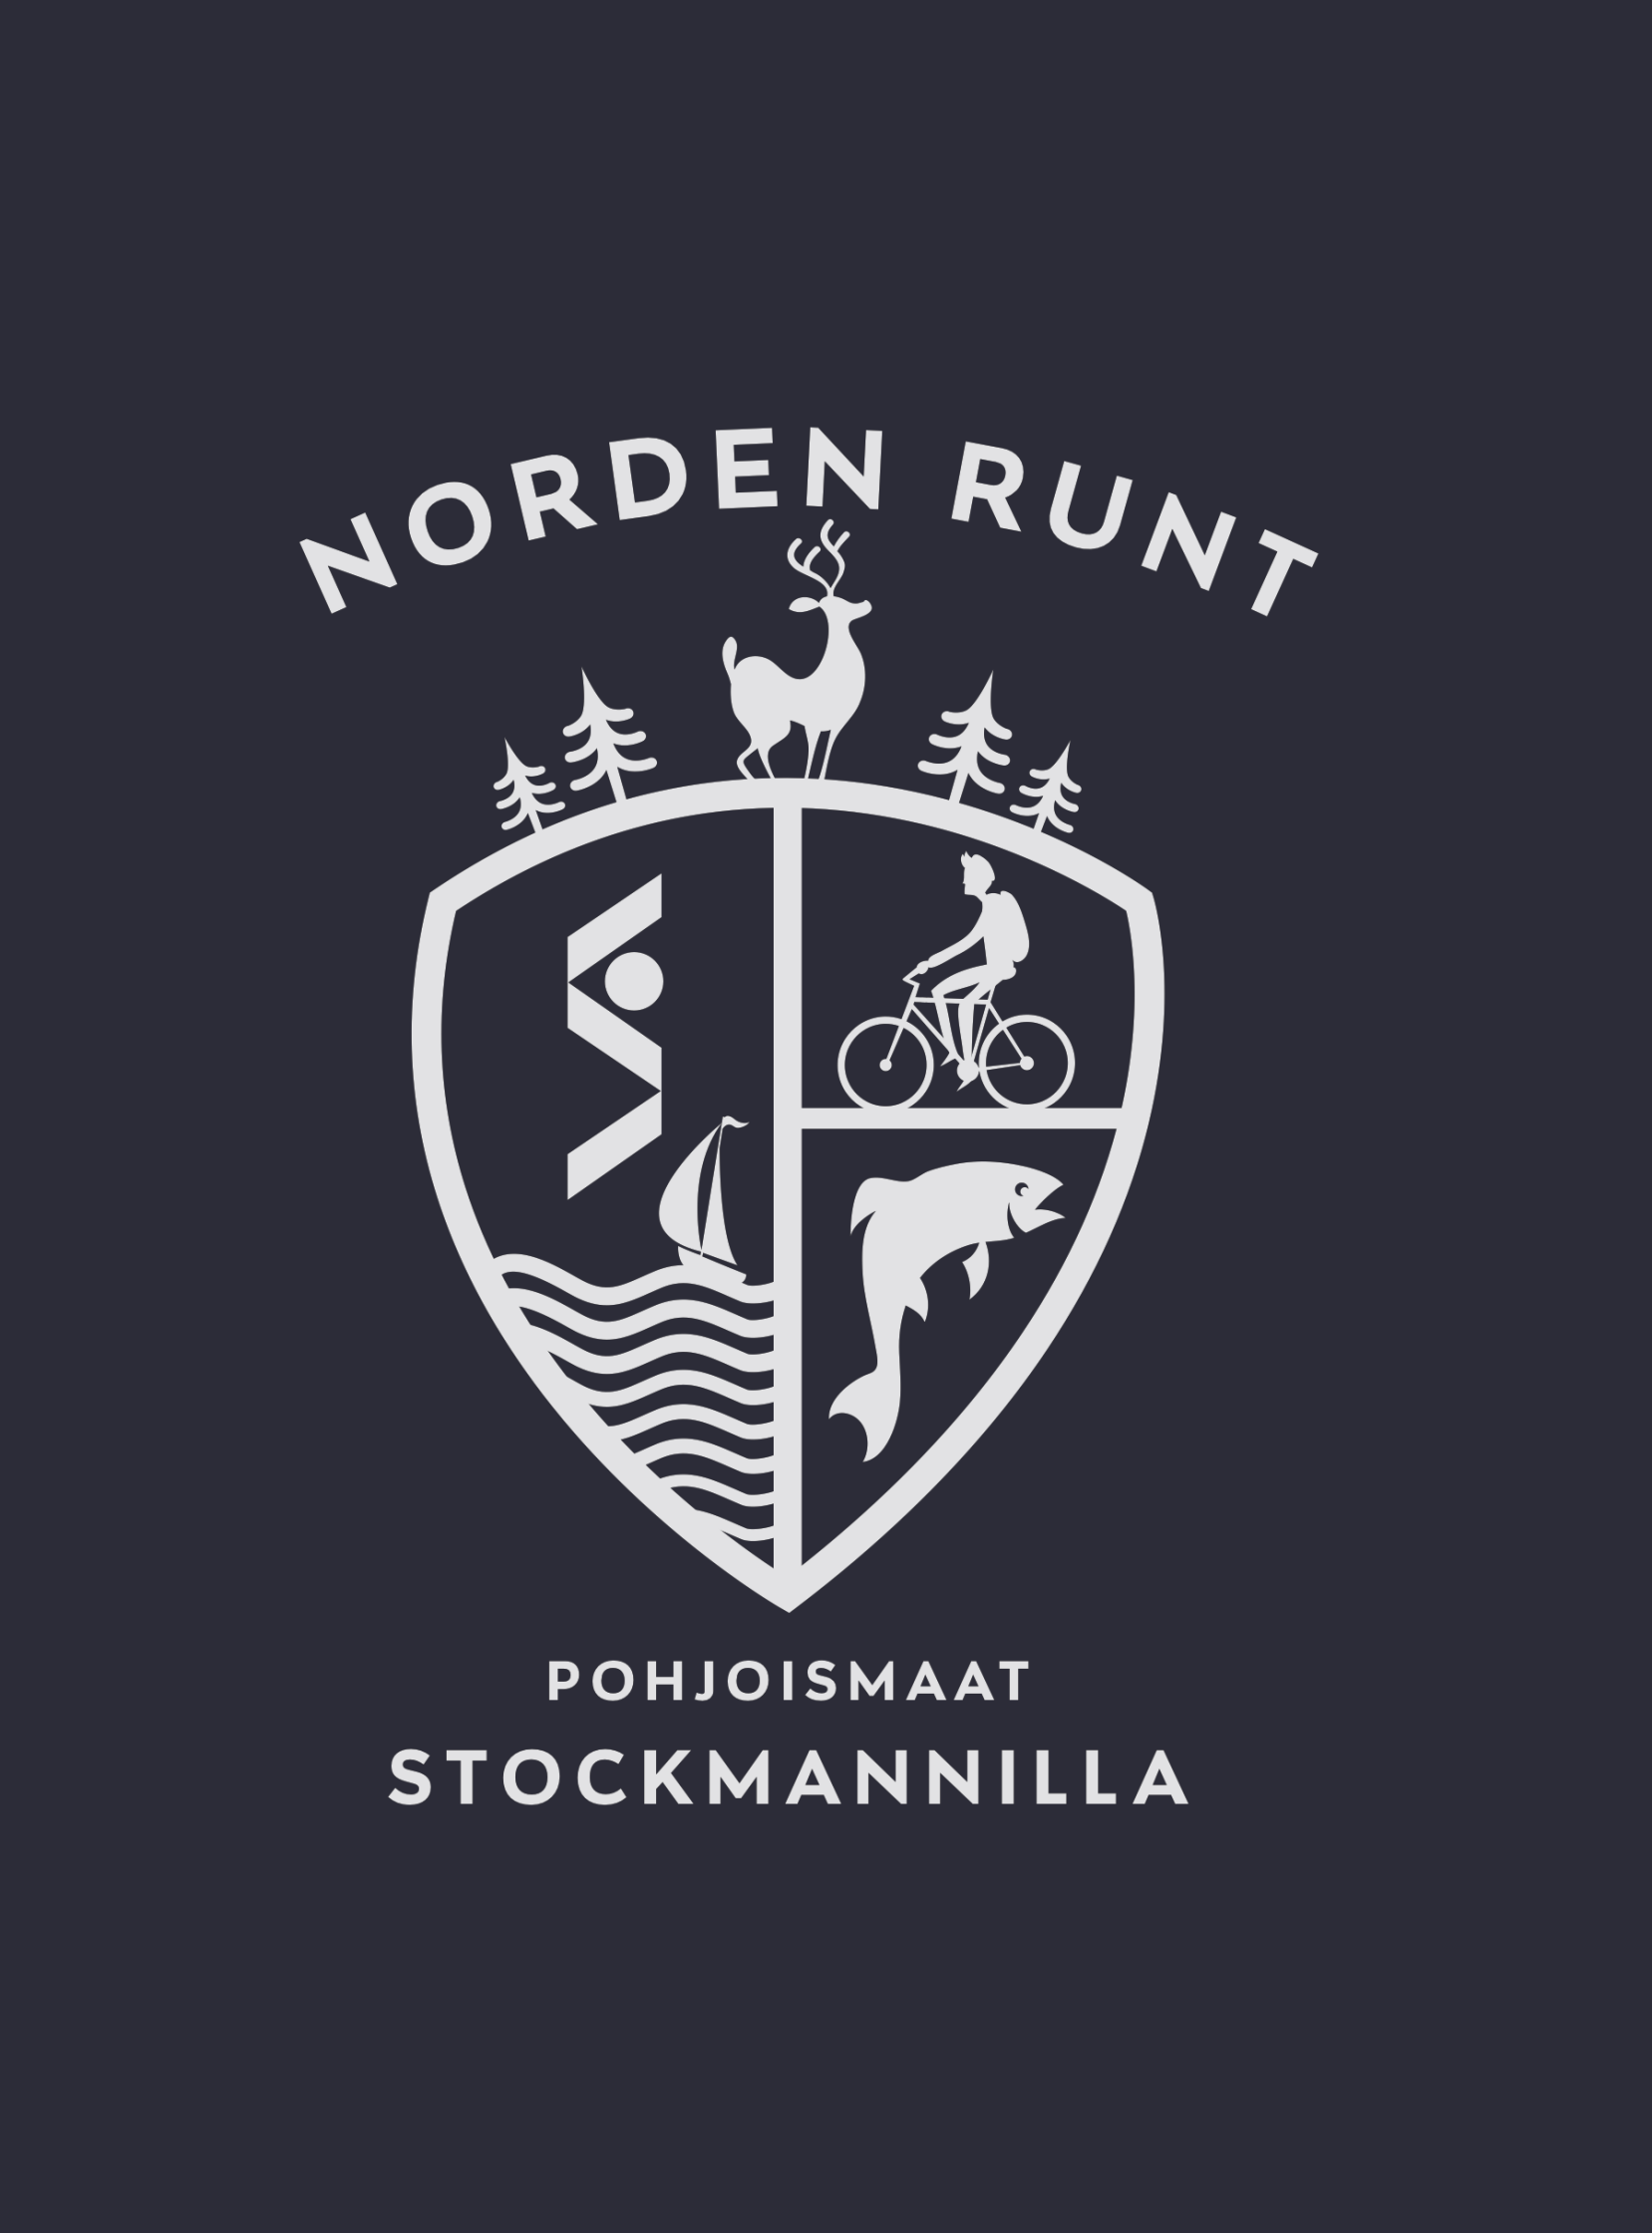 StockmannNorden.png